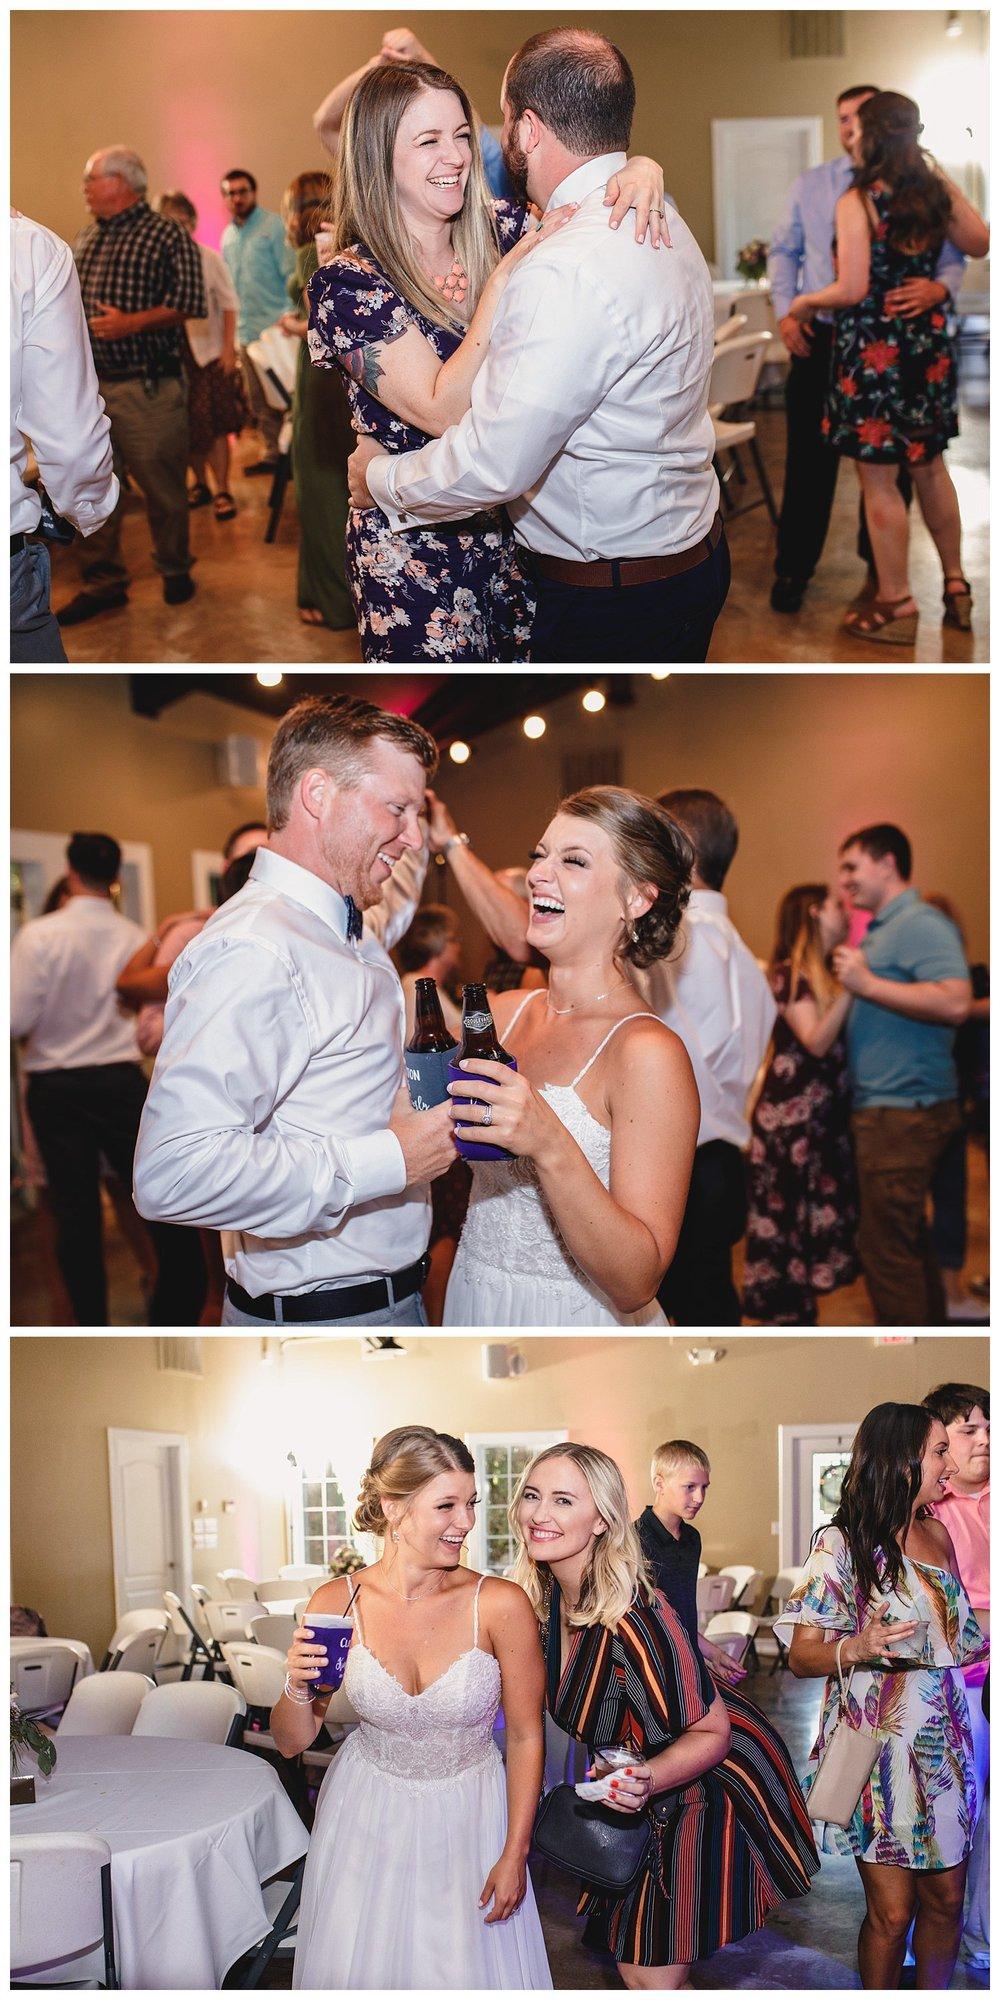 Kelsey_Diane_Photography_Kansas_City_Engagement_Wedding_Photographer_Midwest_Traveling_Missouri_Lee_Andrew_Hall_And_Garden_Blue_Springs_Wedding_Clayton_Kimberly_Summer_Wedding_0848.jpg